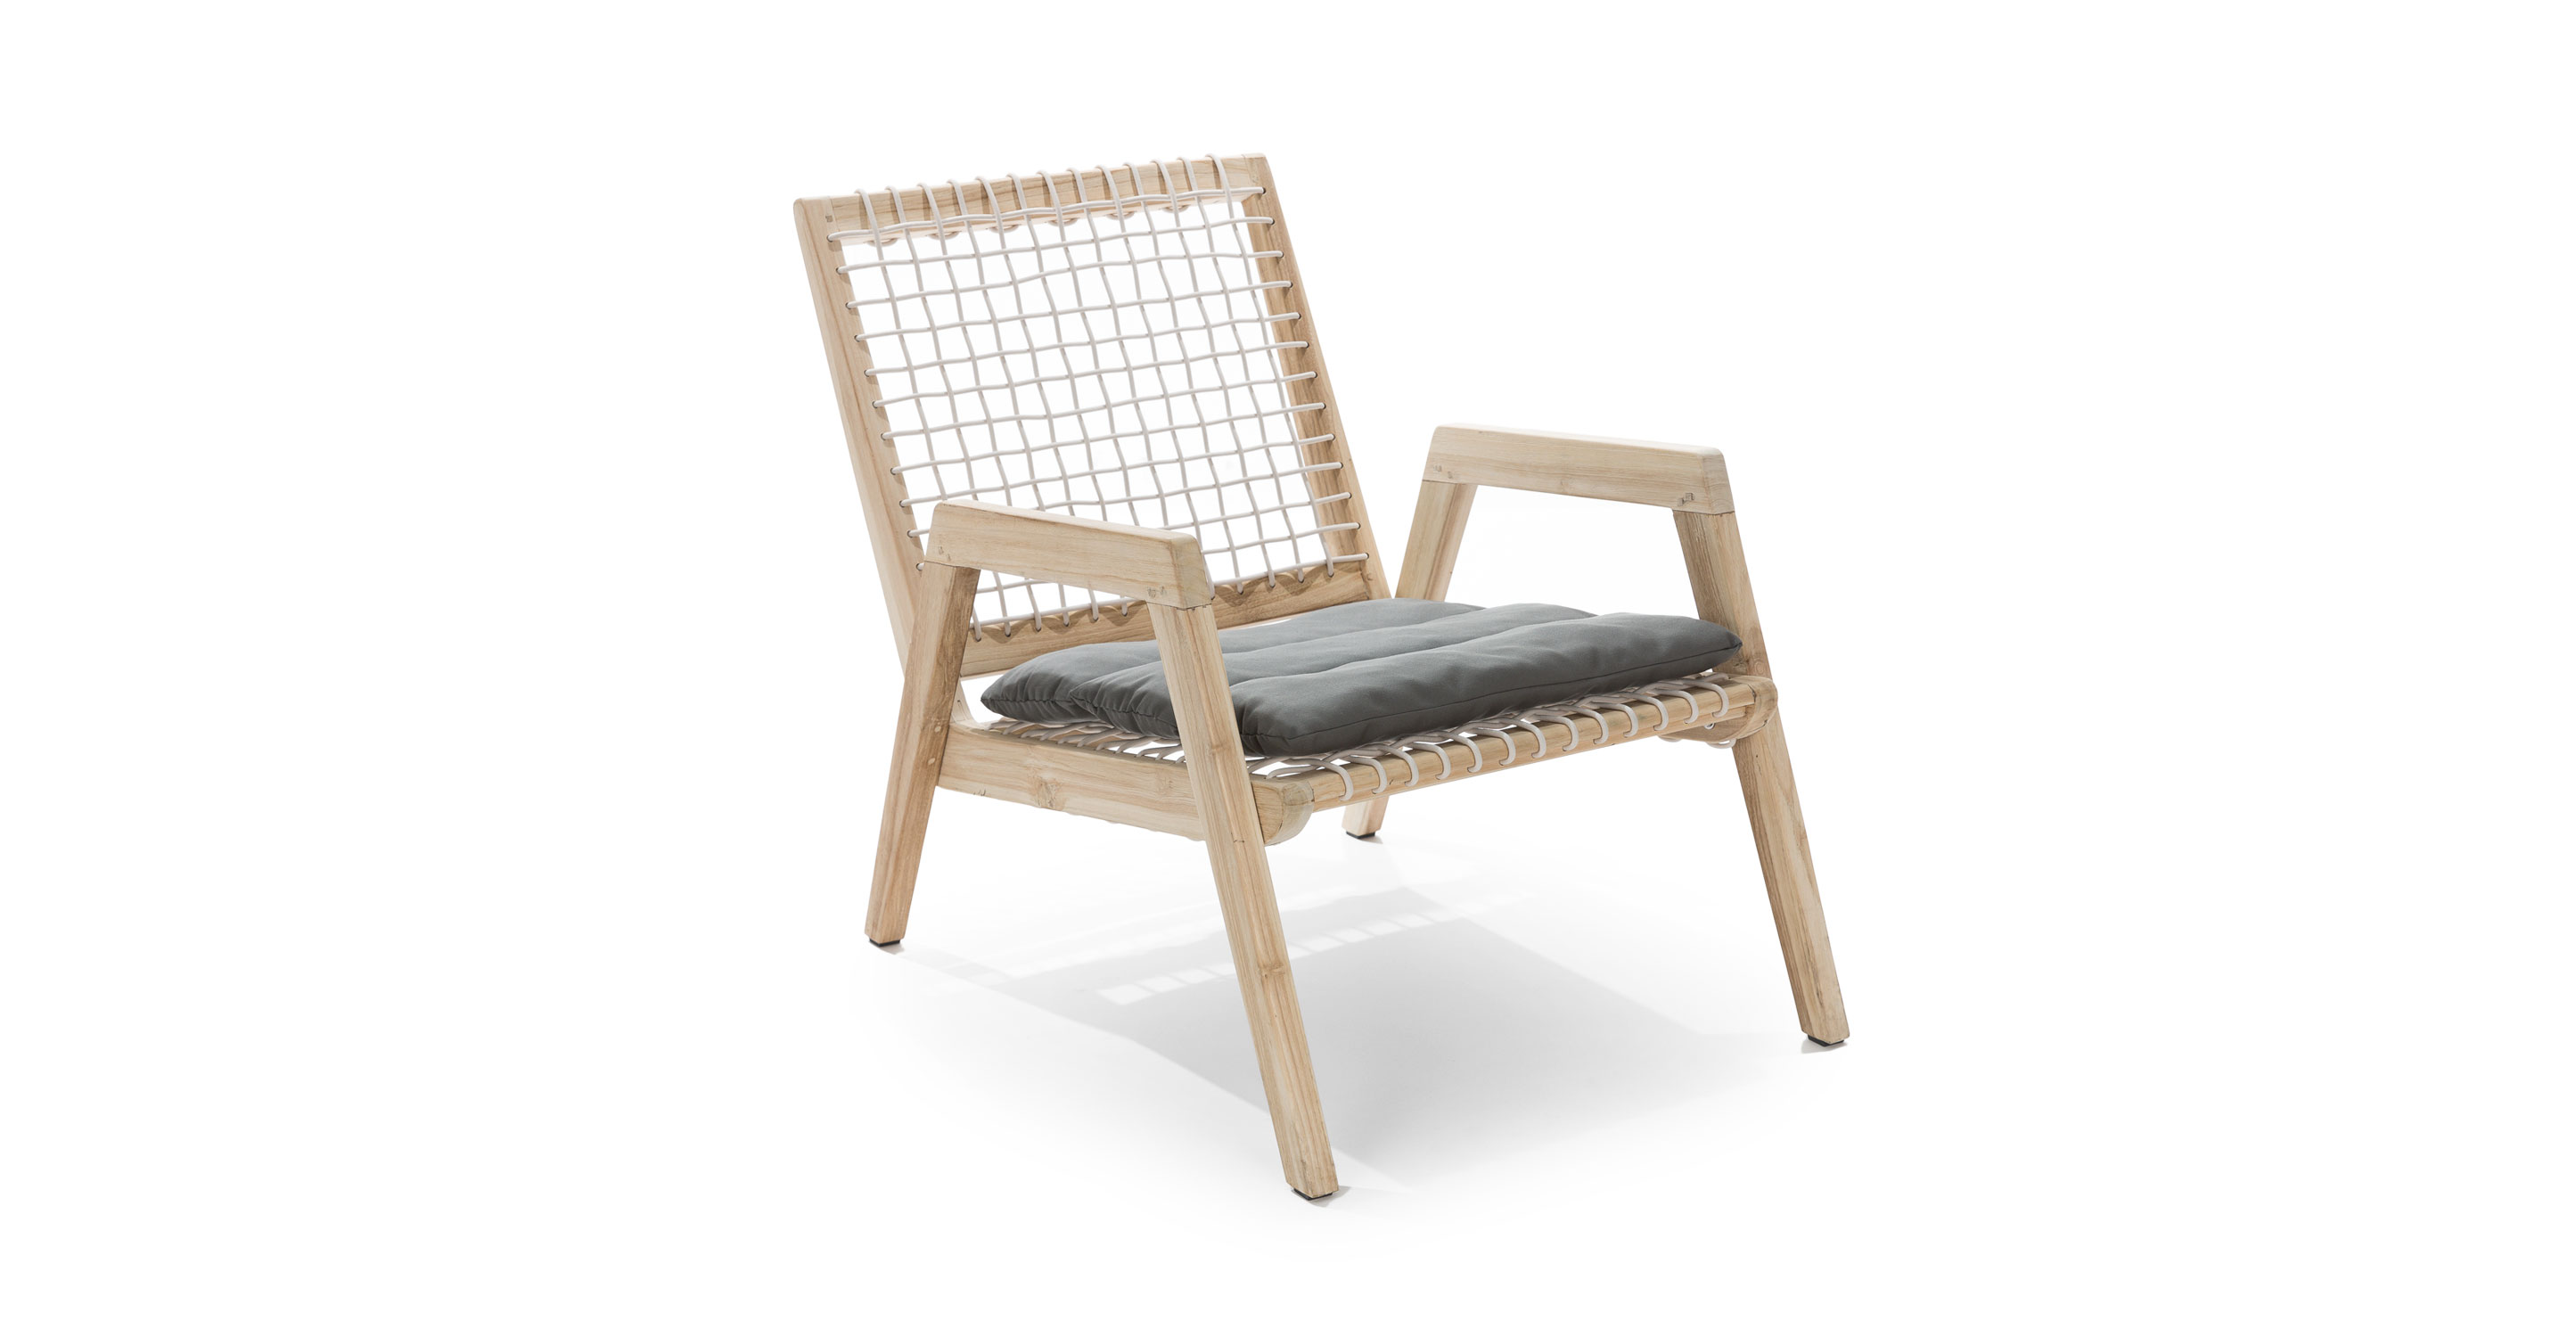 Natural Teak Wood And Concrete Gray Fabric Wicker Lounge Chair Teaka Article